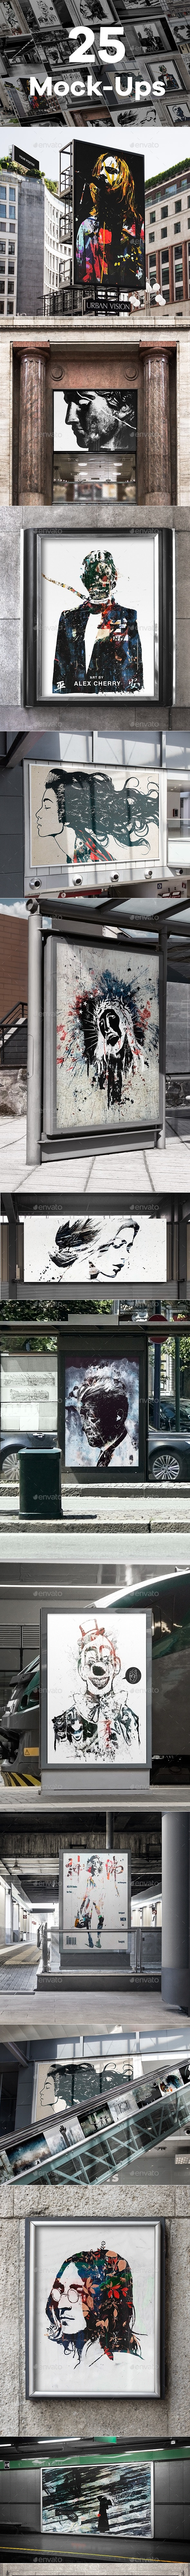 Outdoor Advertising Mock-ups - Print Product Mock-Ups